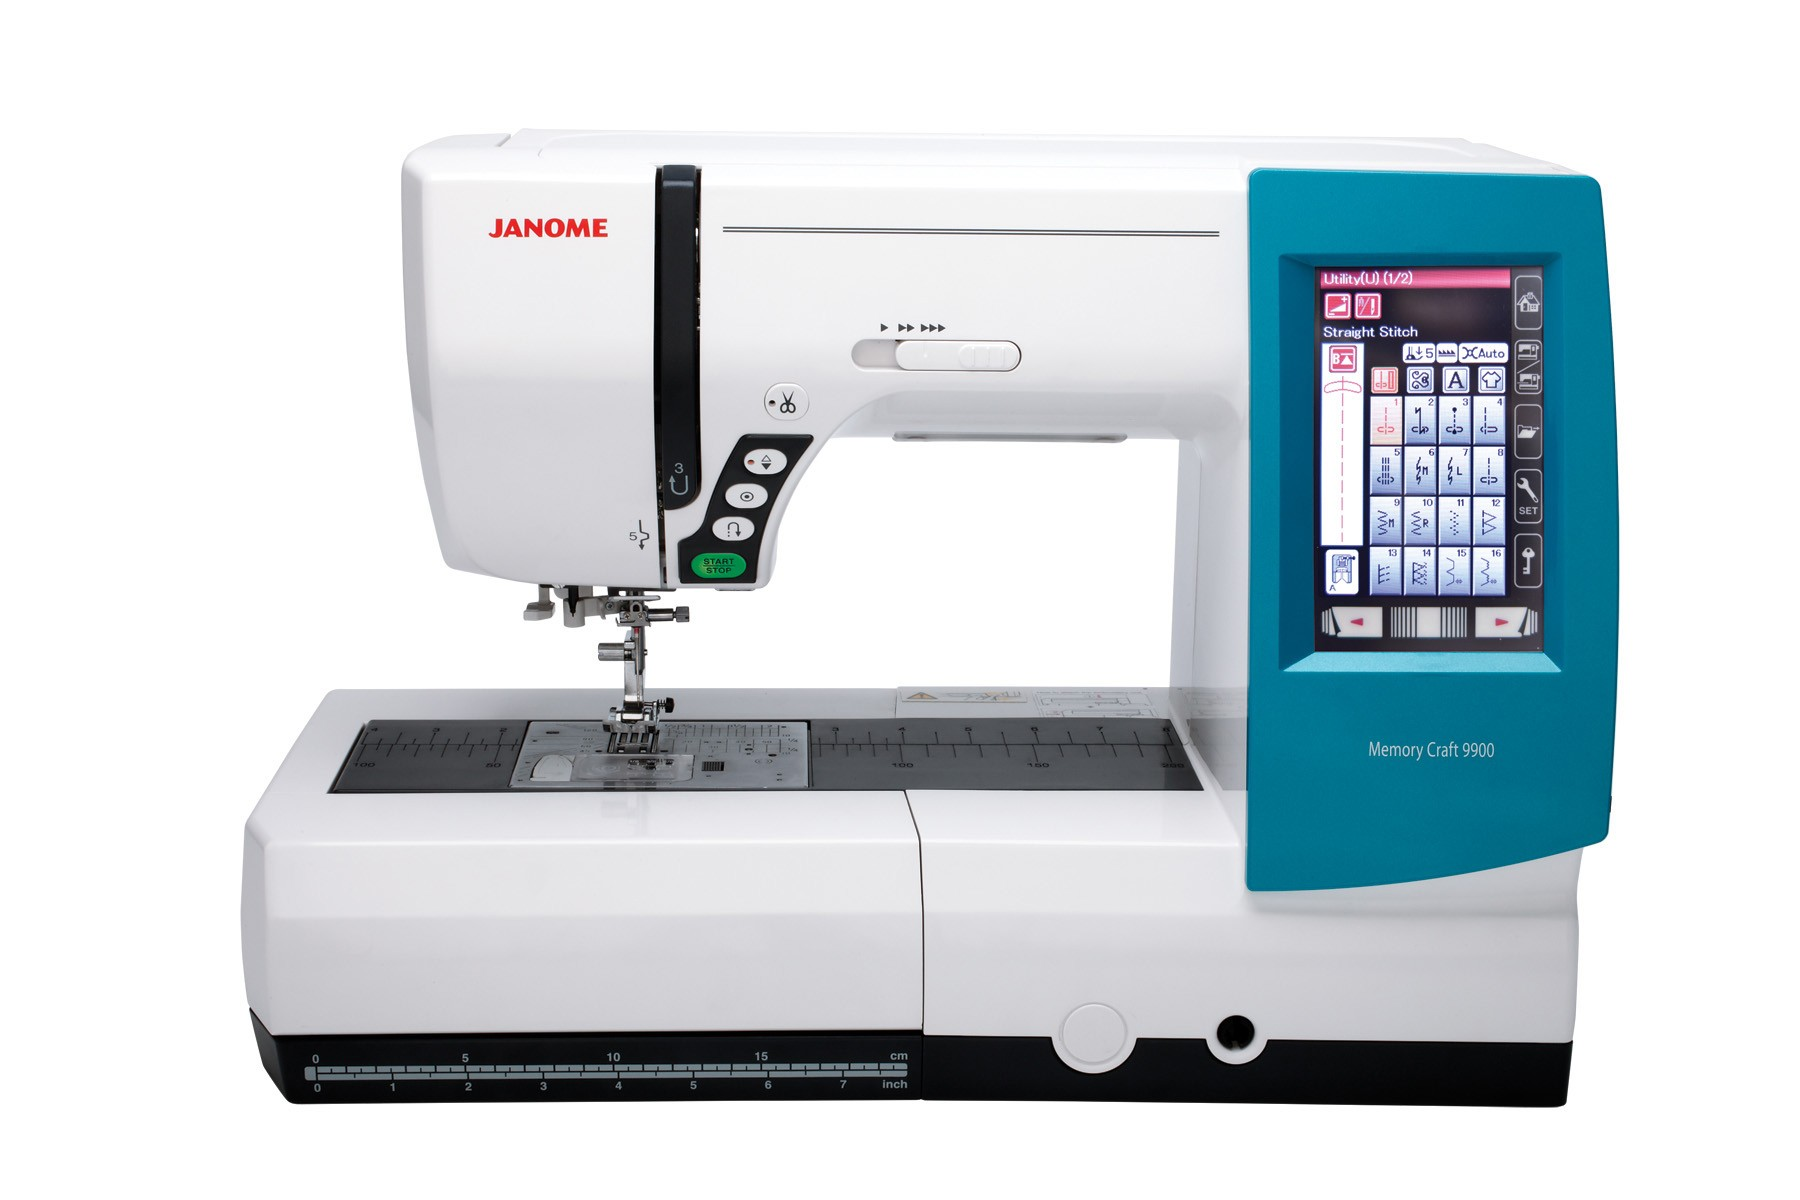 machine janome on hd the free general motion project sewing quilt quilting